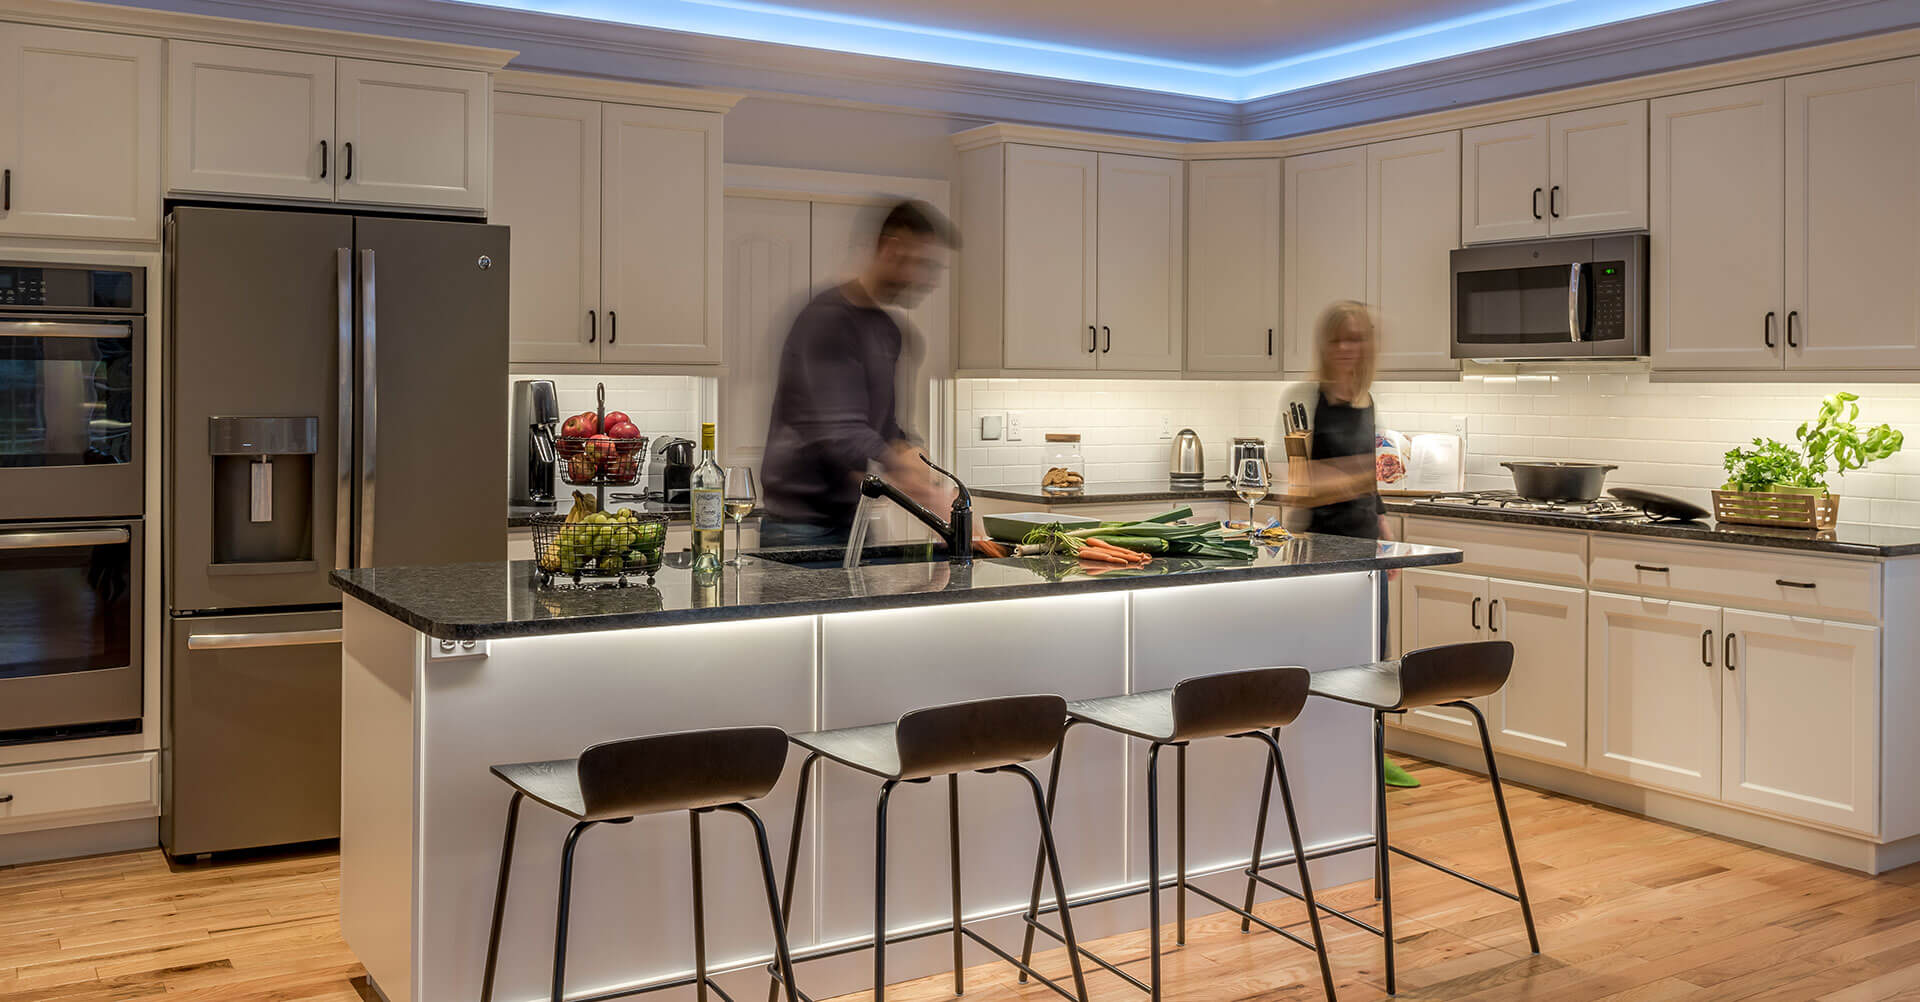 Cooking scene in the Loxone Smart Home